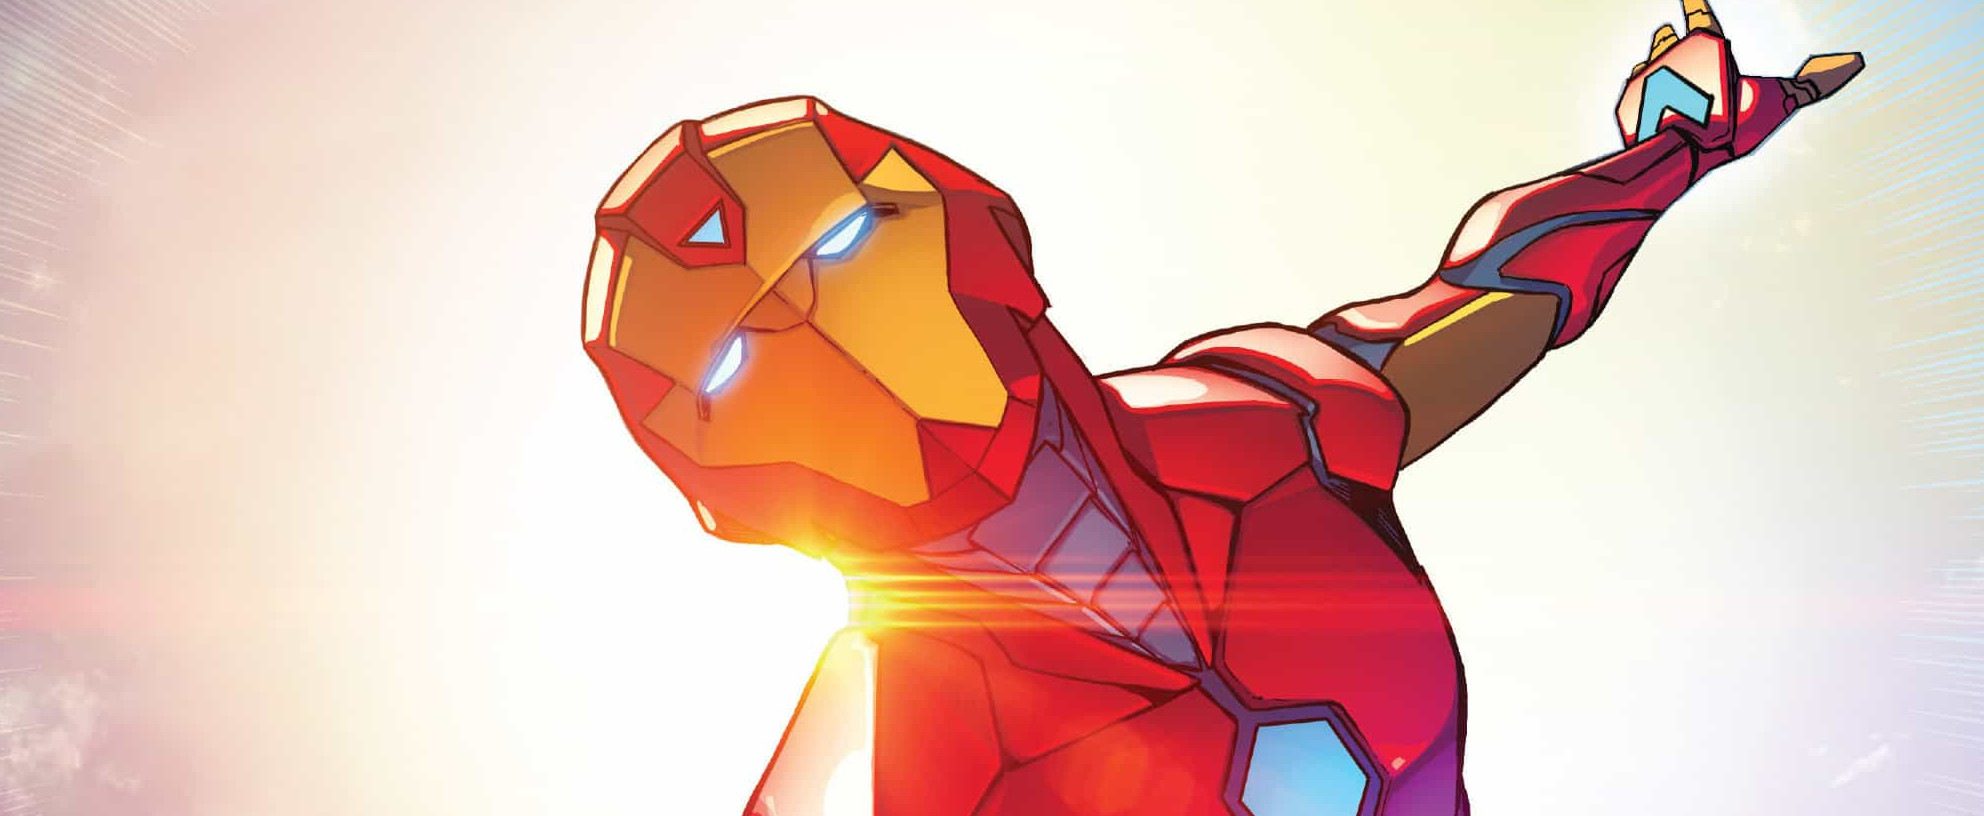 invincible iron man